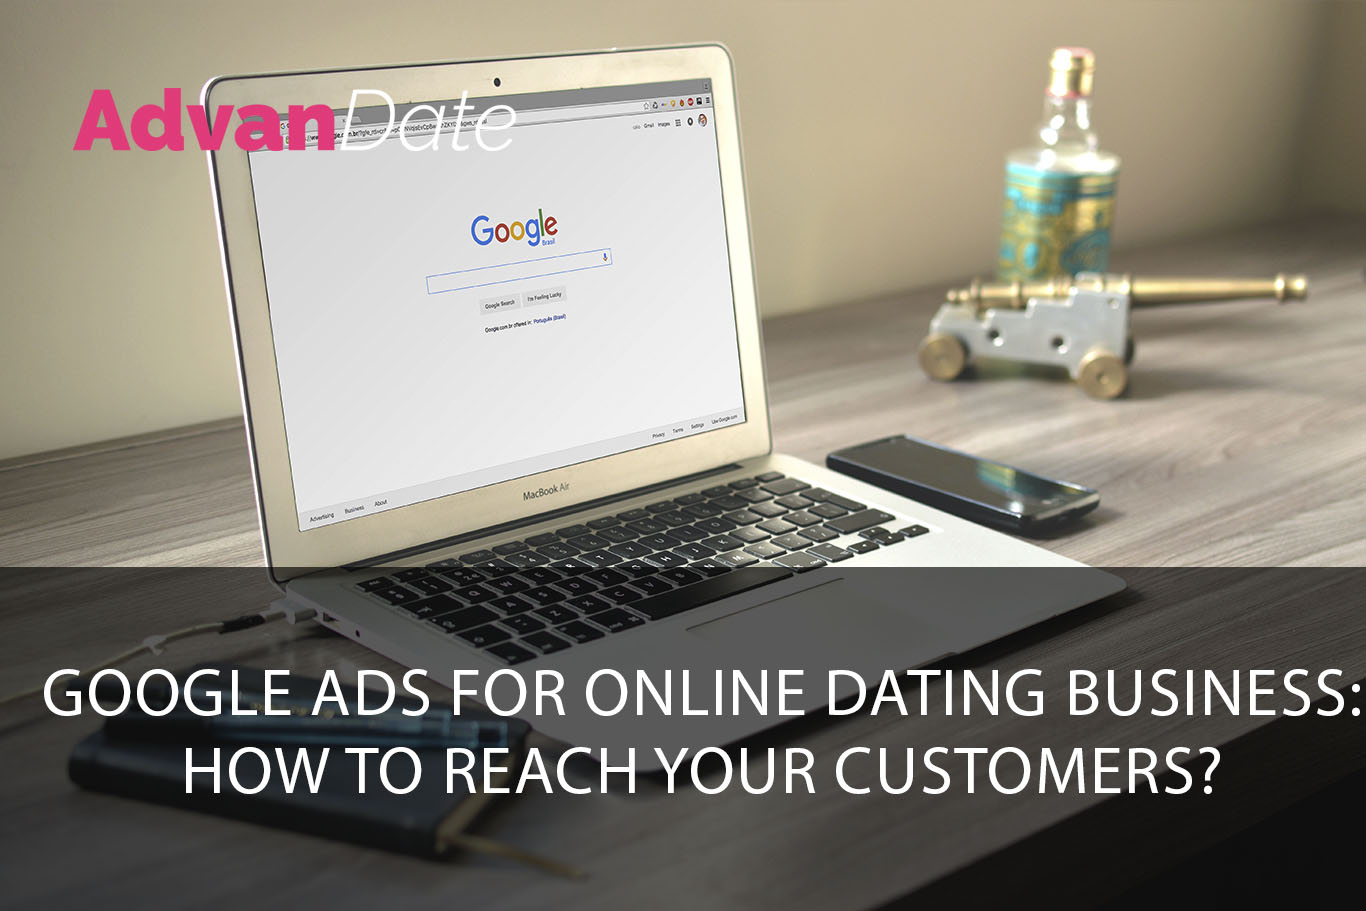 Google Ads for online dating business: how to reach your customers?